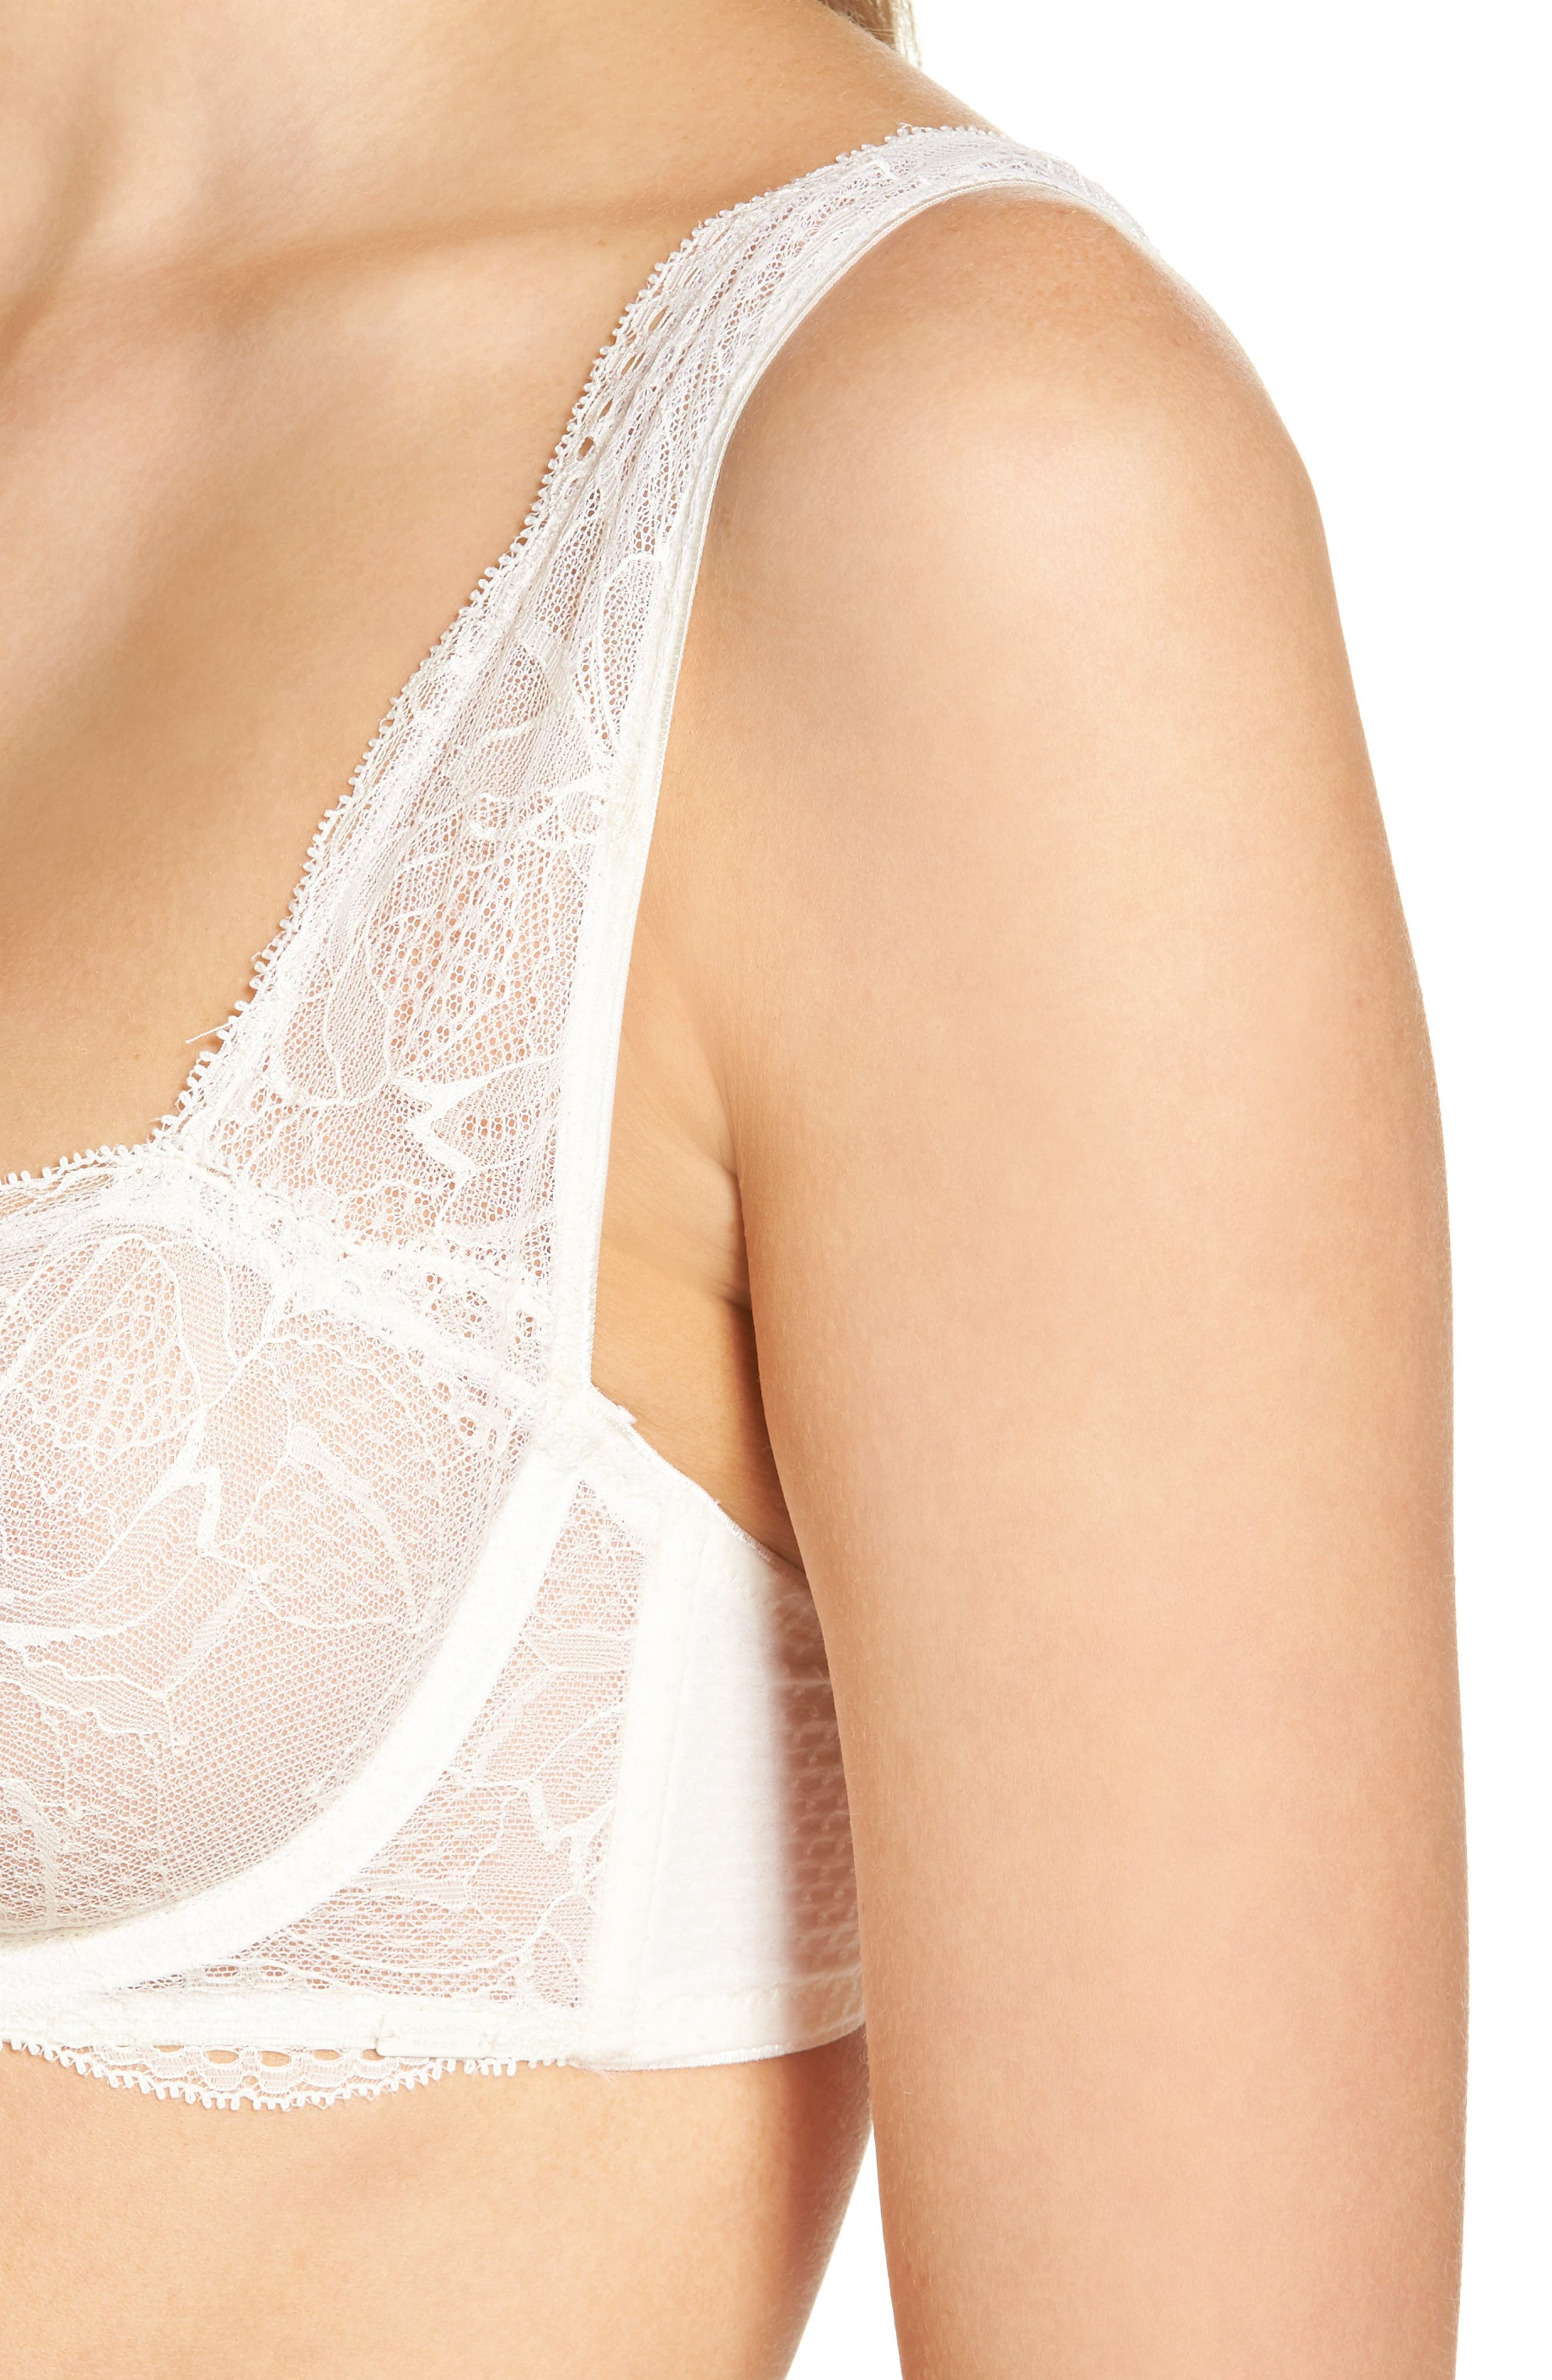 Black Rose Lace Underwire Bra,                             Alternate thumbnail 4, color,                             900